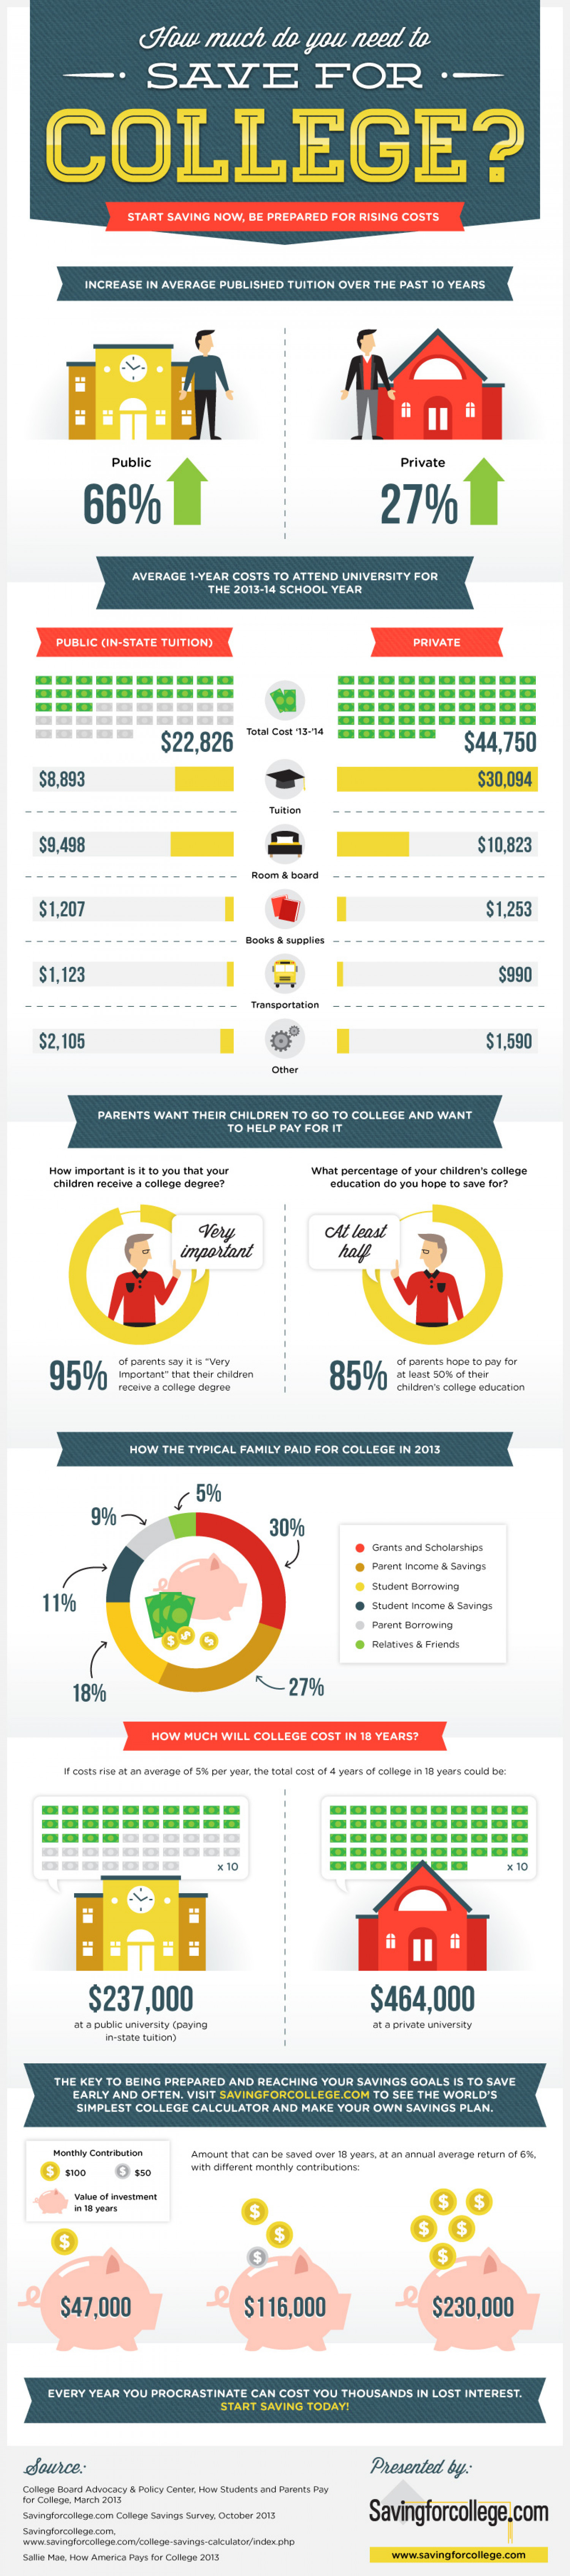 How much do you need to save for College?  Infographic